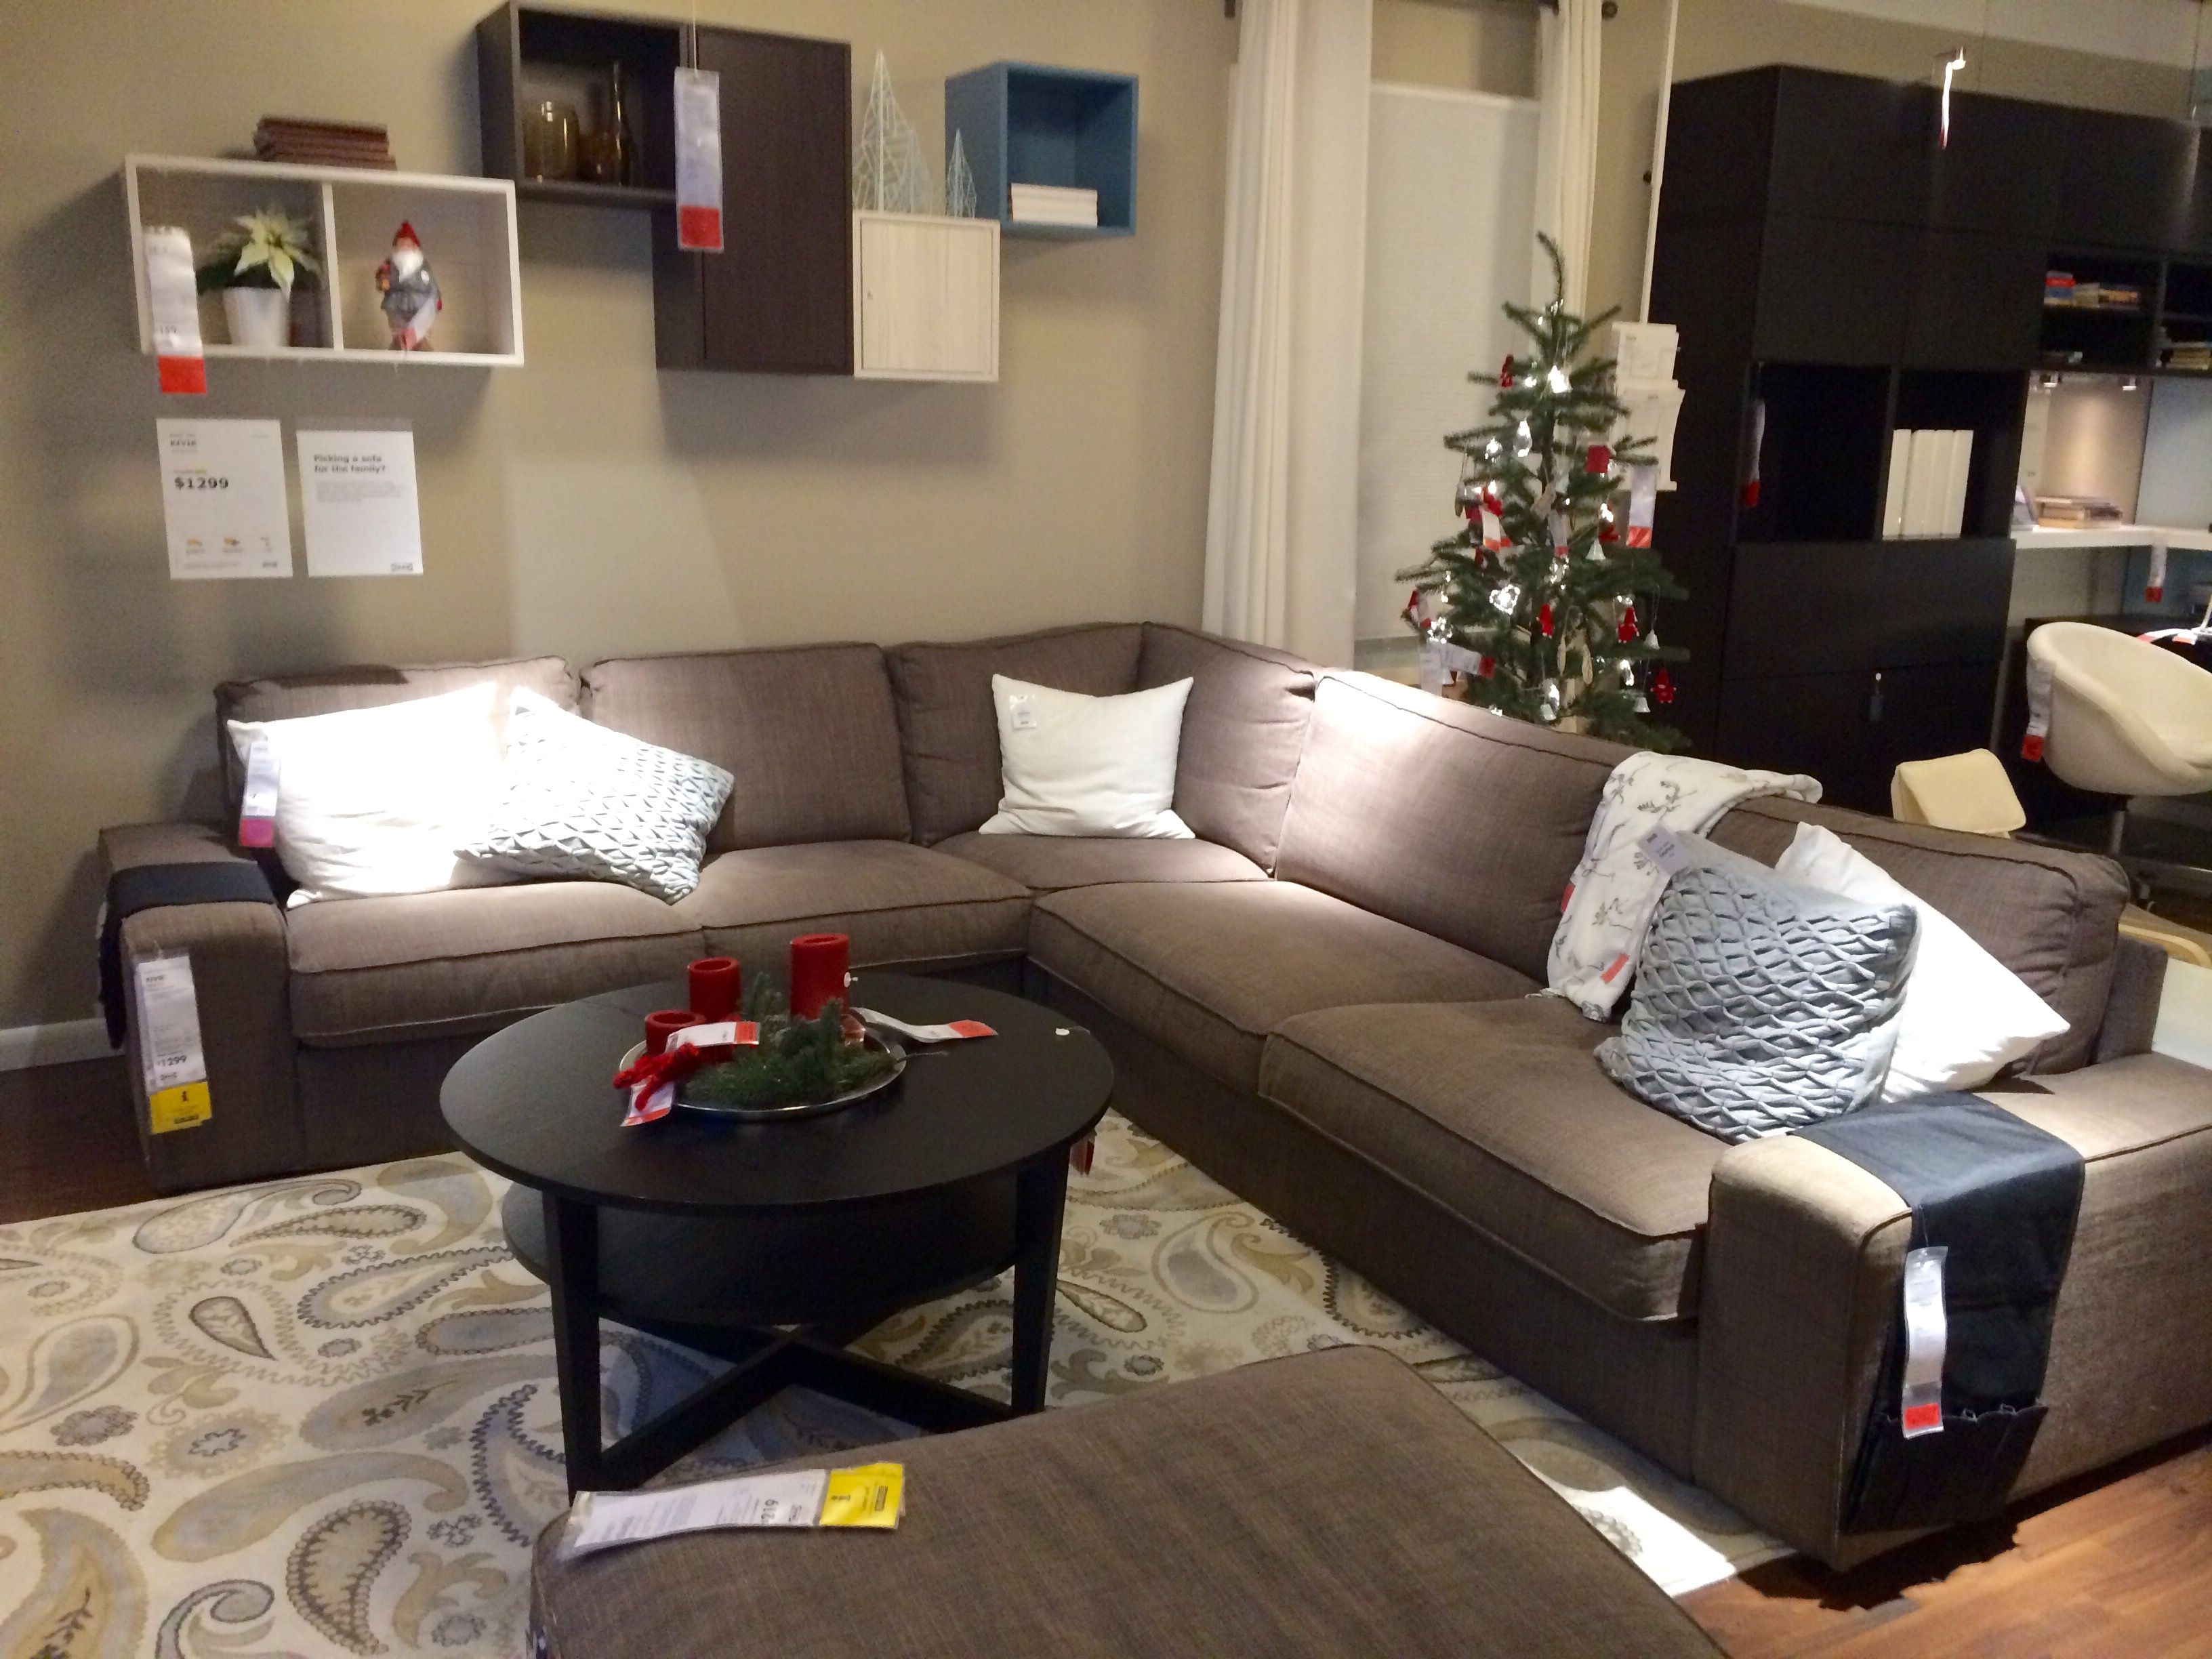 Bettsofa Kivik Ikea Kivik Sectional Sofa Sectional Sofas Pinterest Living